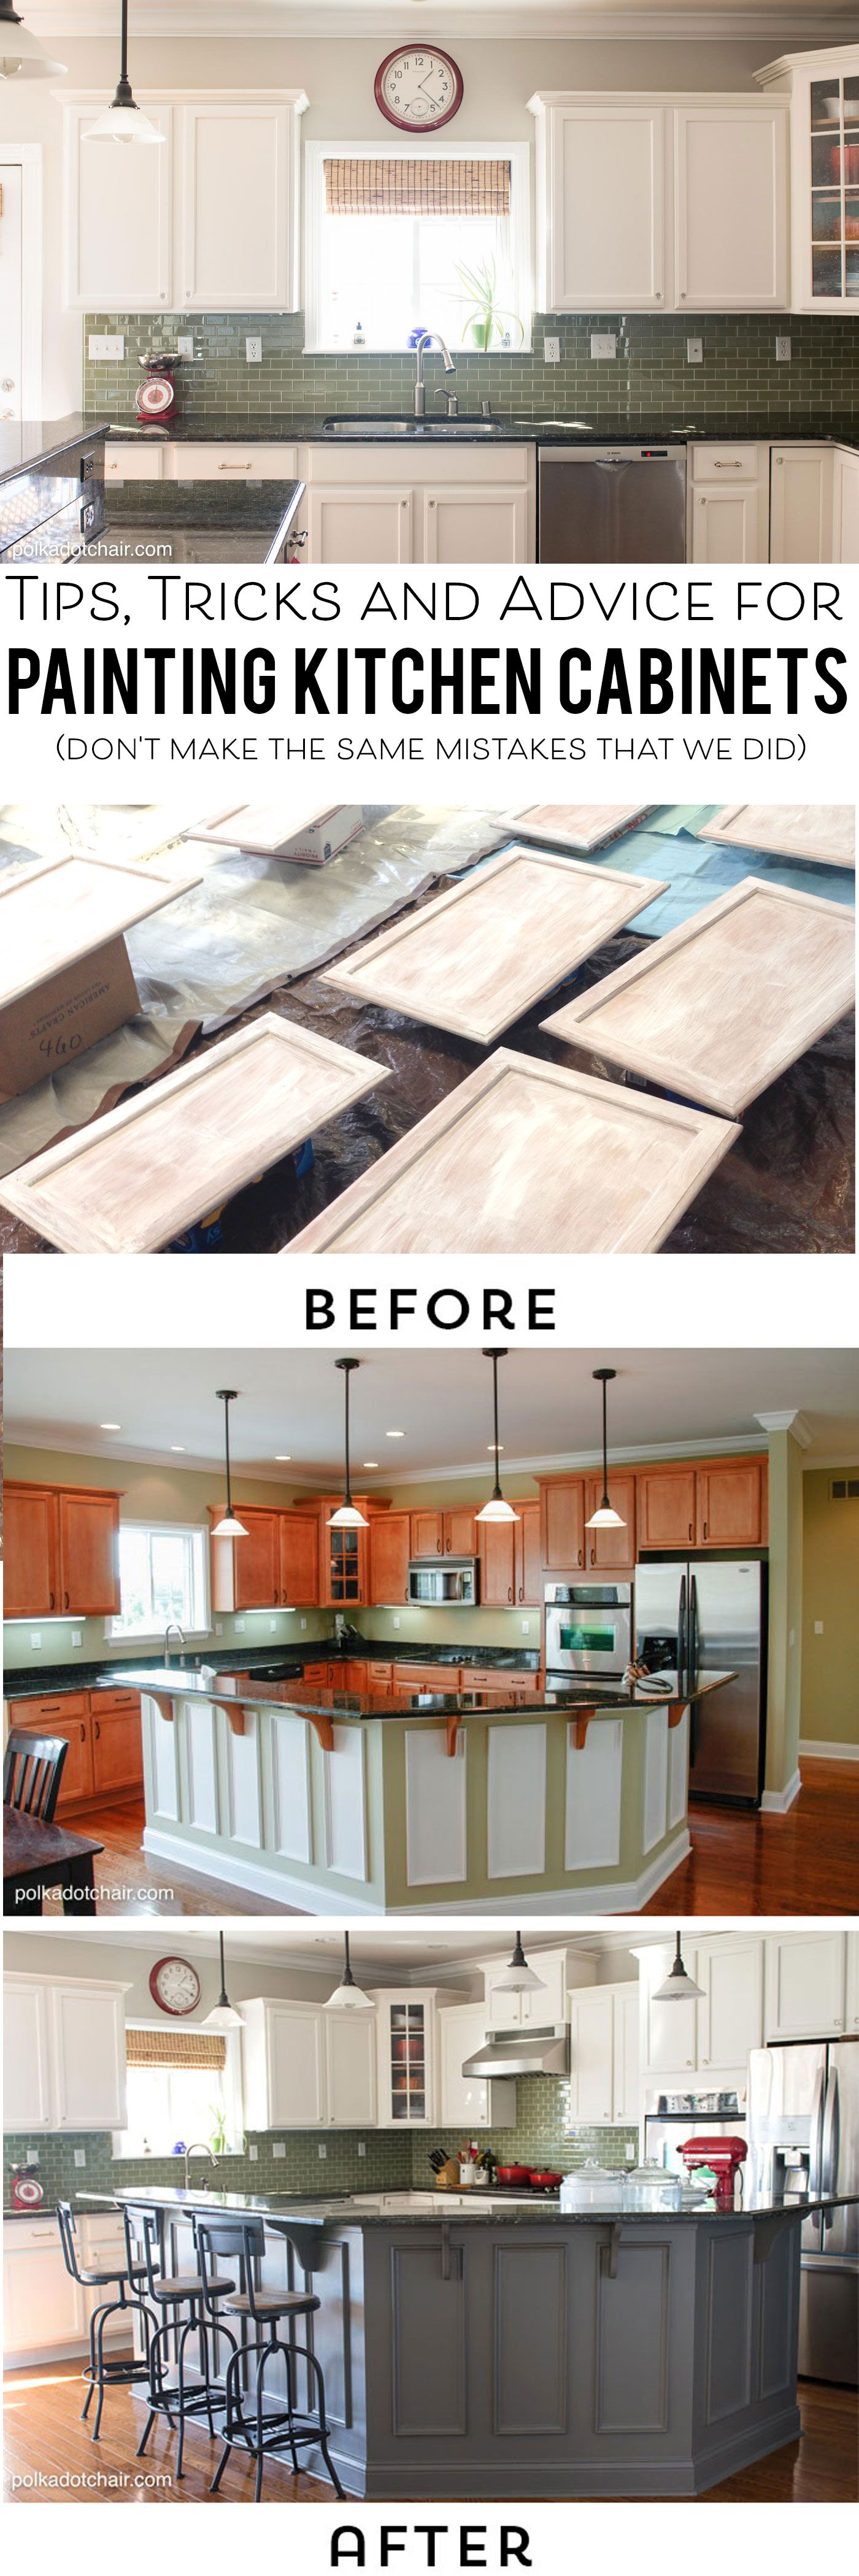 Tips And Tricks For Painting Kitchen Cabinets Polka Dot Chair Painting Kitchen Cabinets Painting Kitchen Cabinets White Kitchen Cabinets